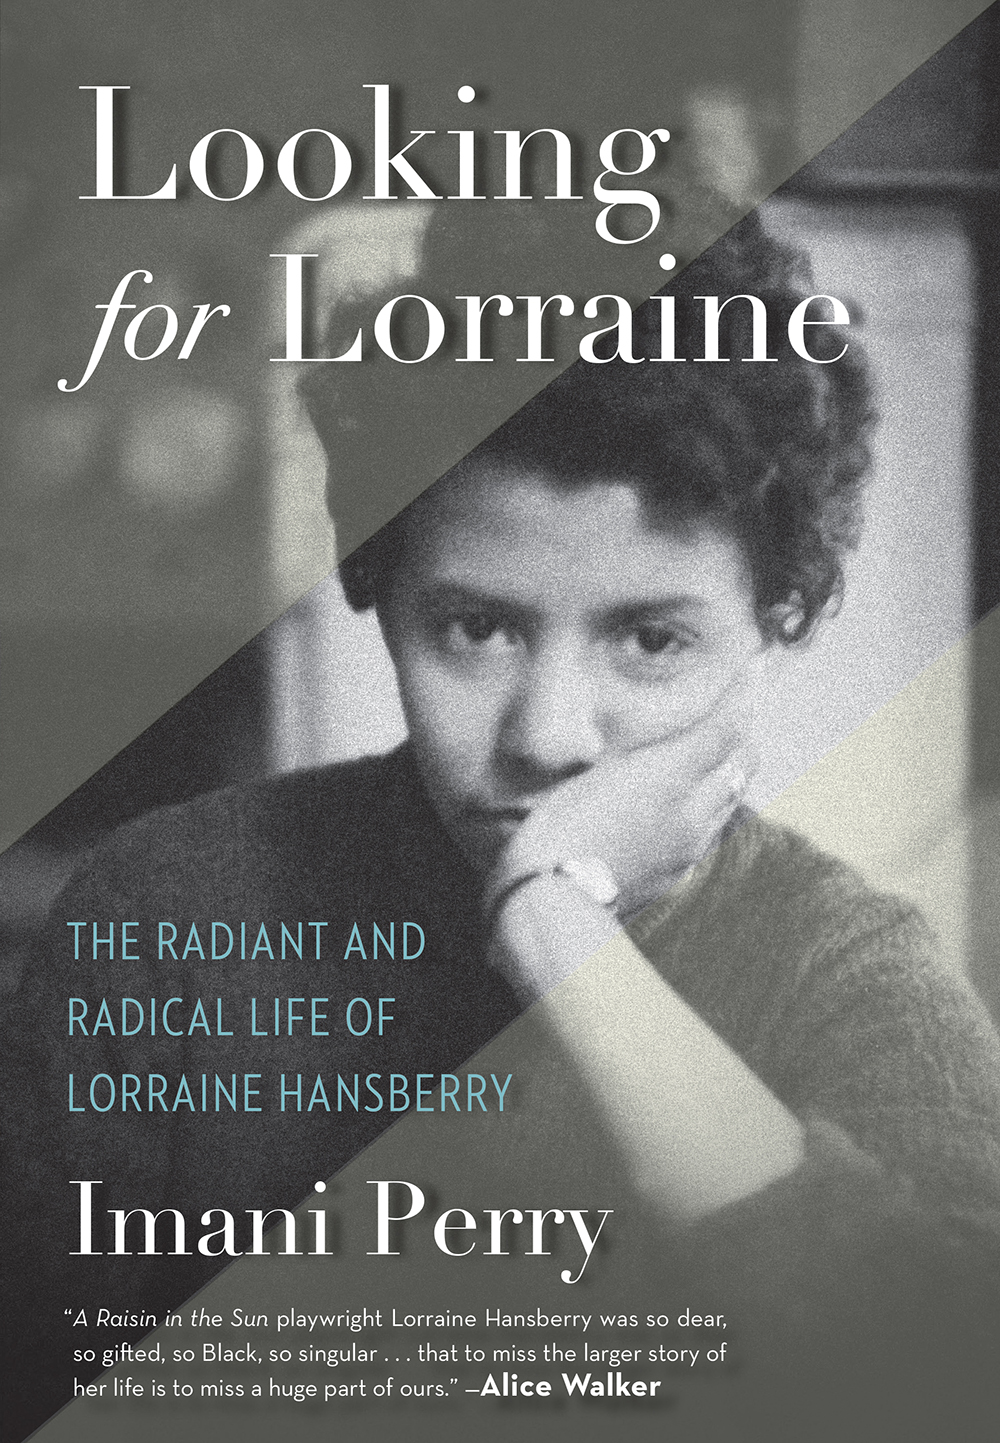 image of book cover of Looking for Lorraine by Imani Perry